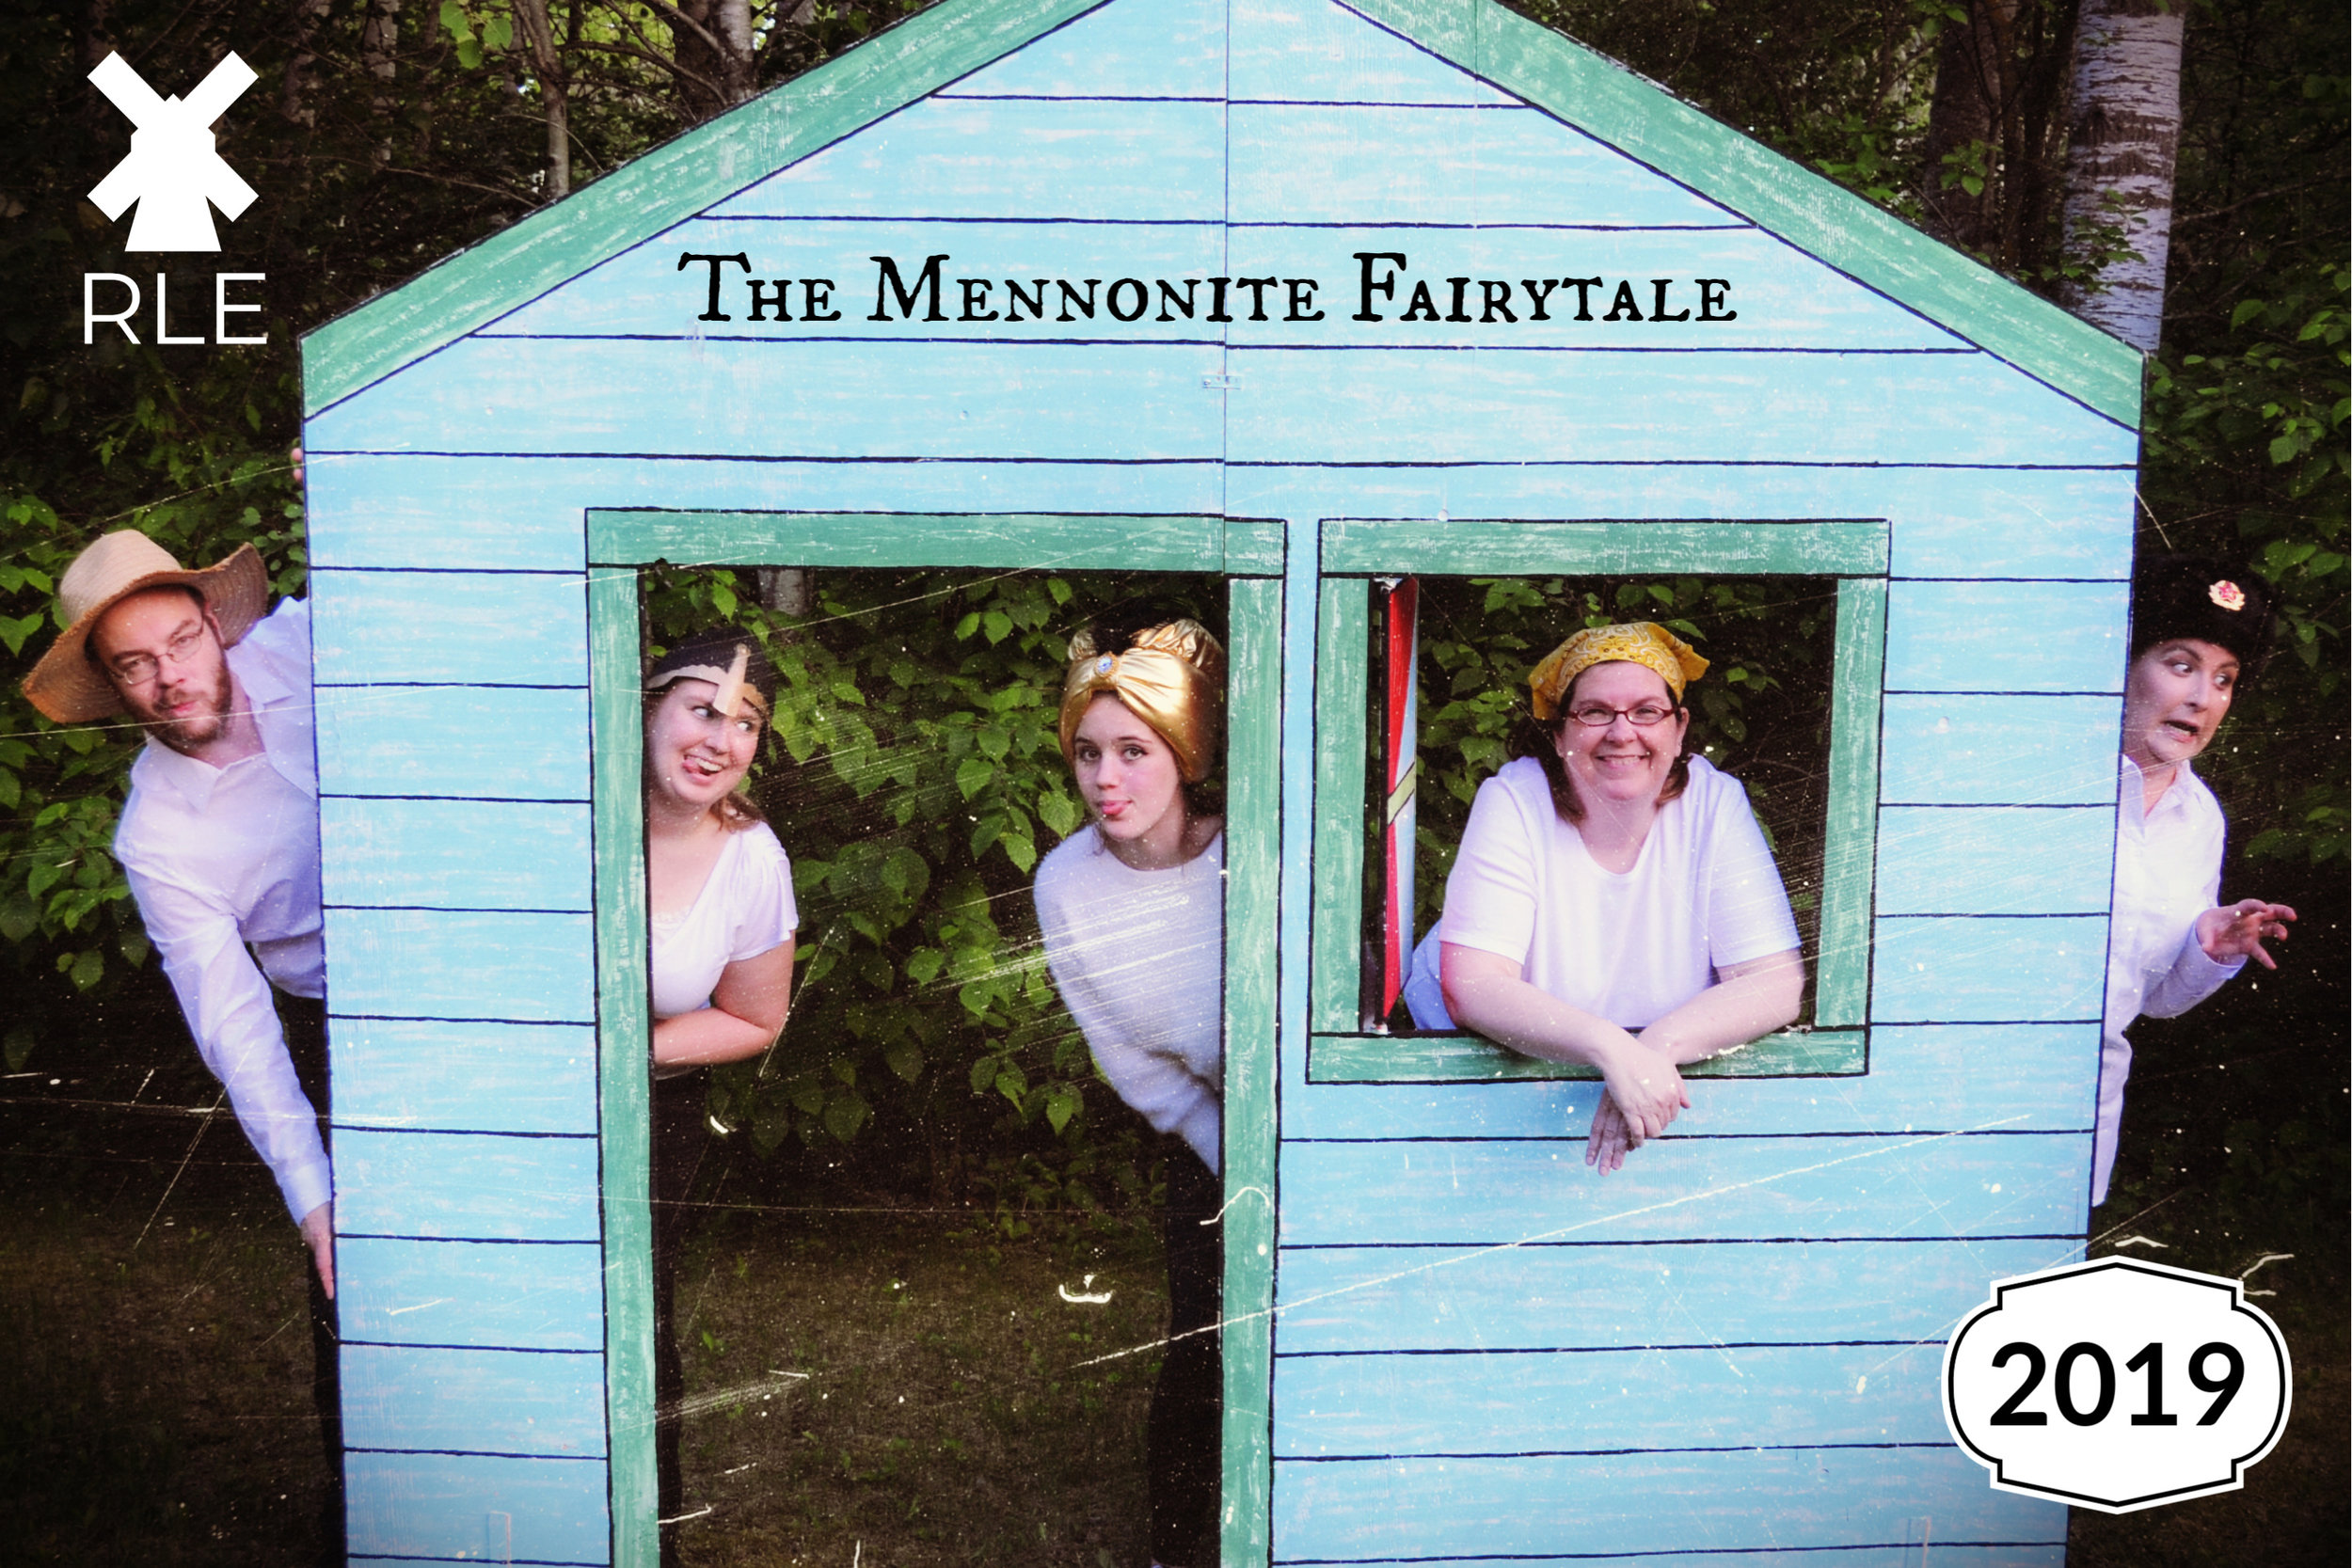 The Mennonite Fairytale, 2019